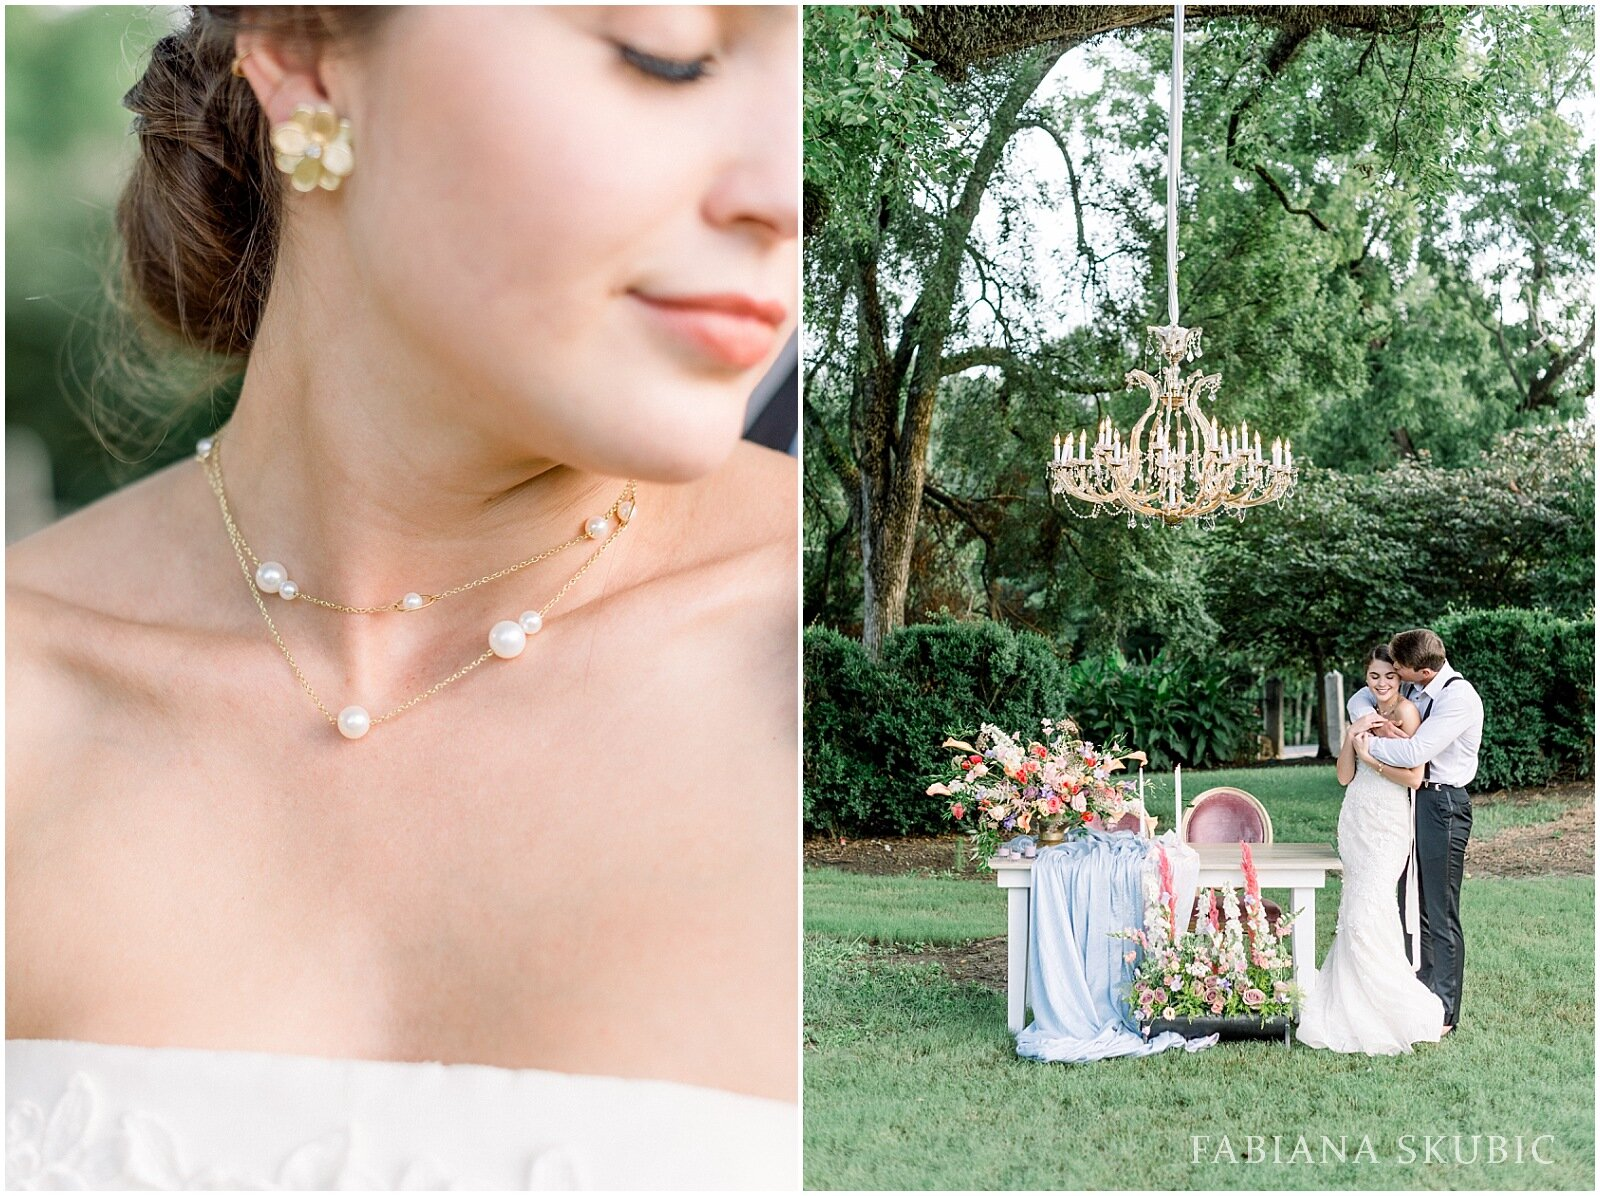 Raleigh-Wedding-Photographer-Fabiana-Skubic (78).jpg